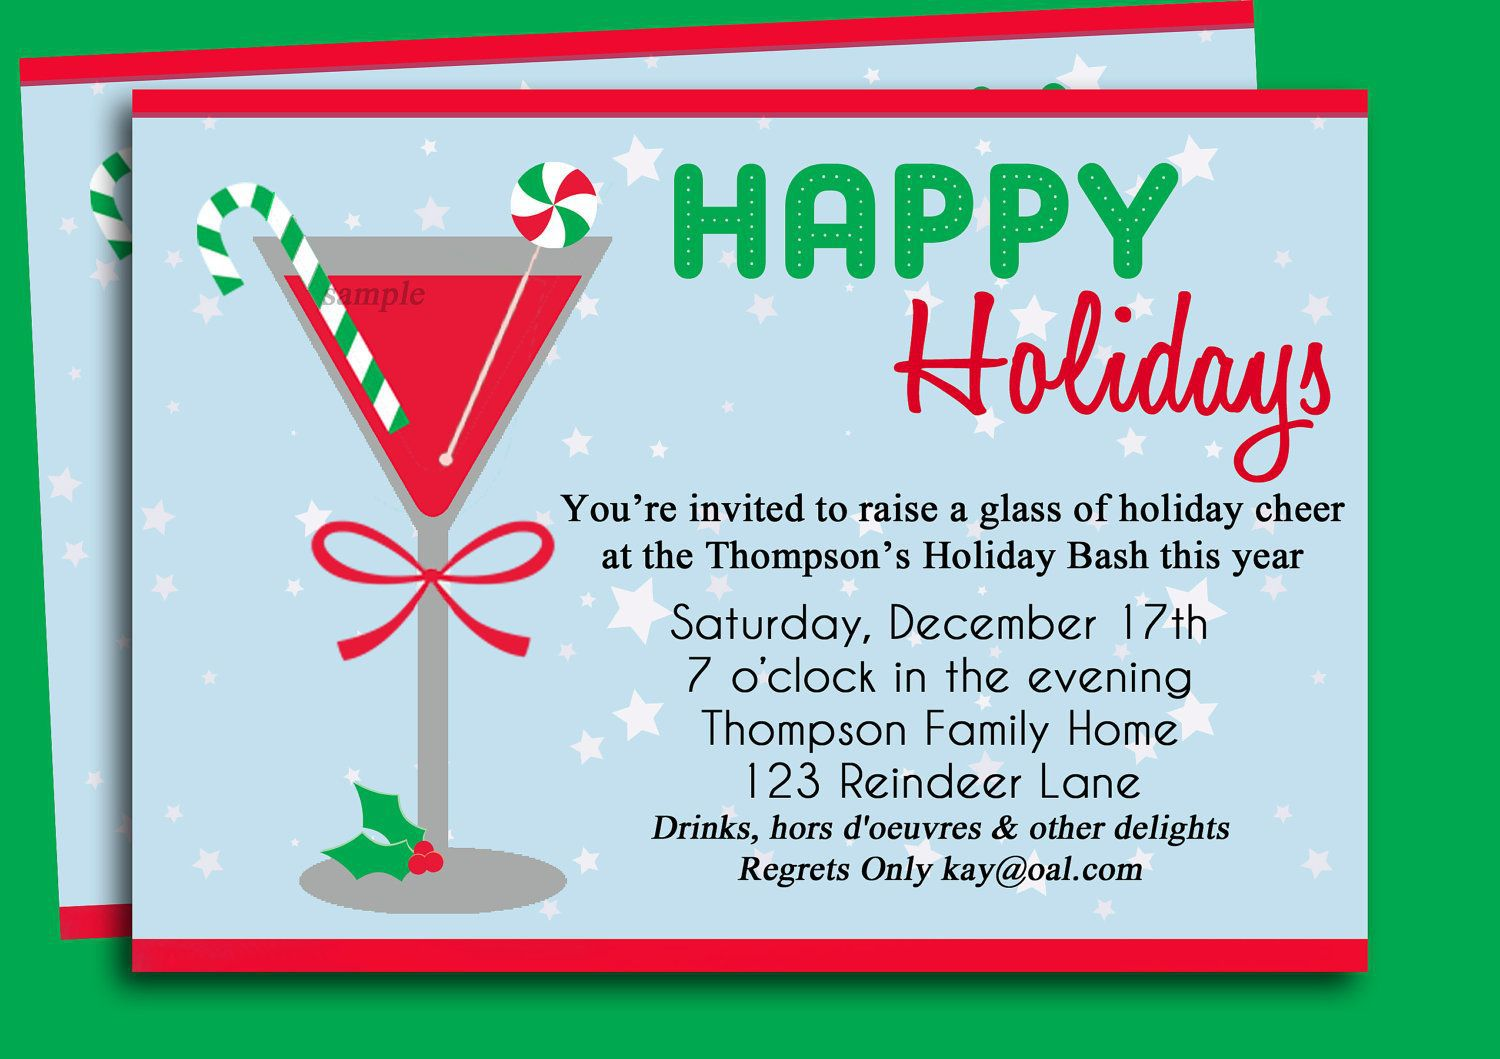 002 Impressive Holiday Open House Invitation Template High Resolution  Christma Free Printable Wording IdeaFull